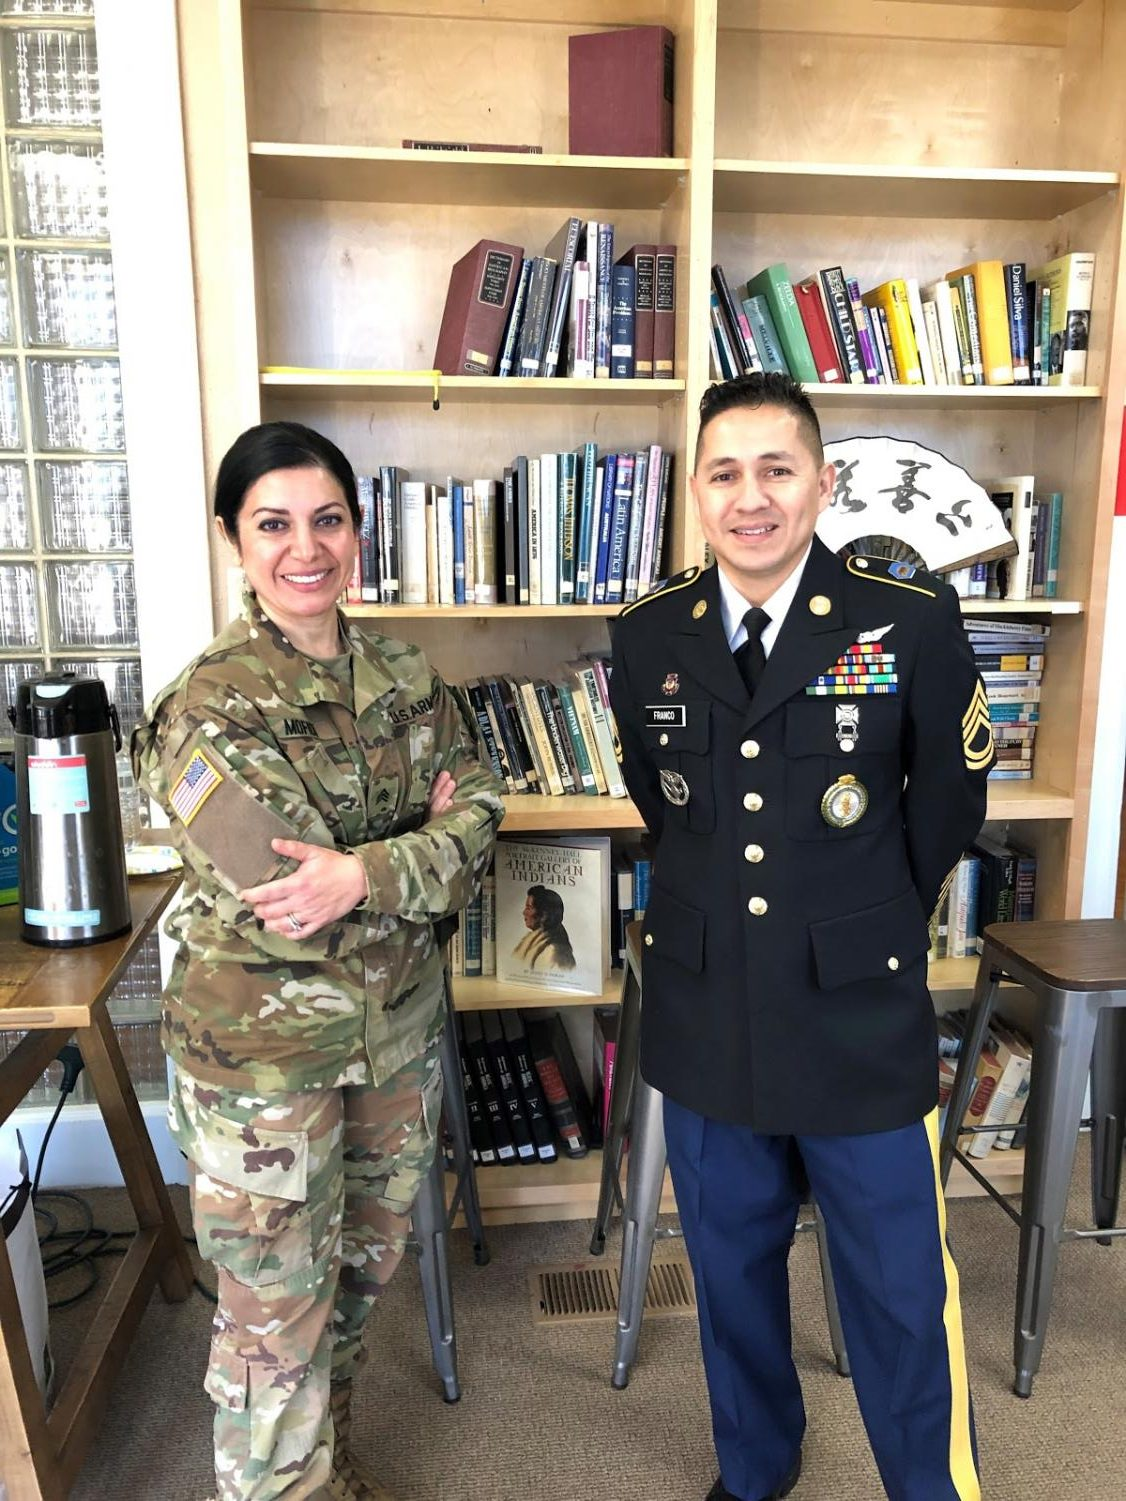 Alumnus Carlos Andres Franco, right, wears his uniform as he poses with a colleague on Pomona Catholic career day.